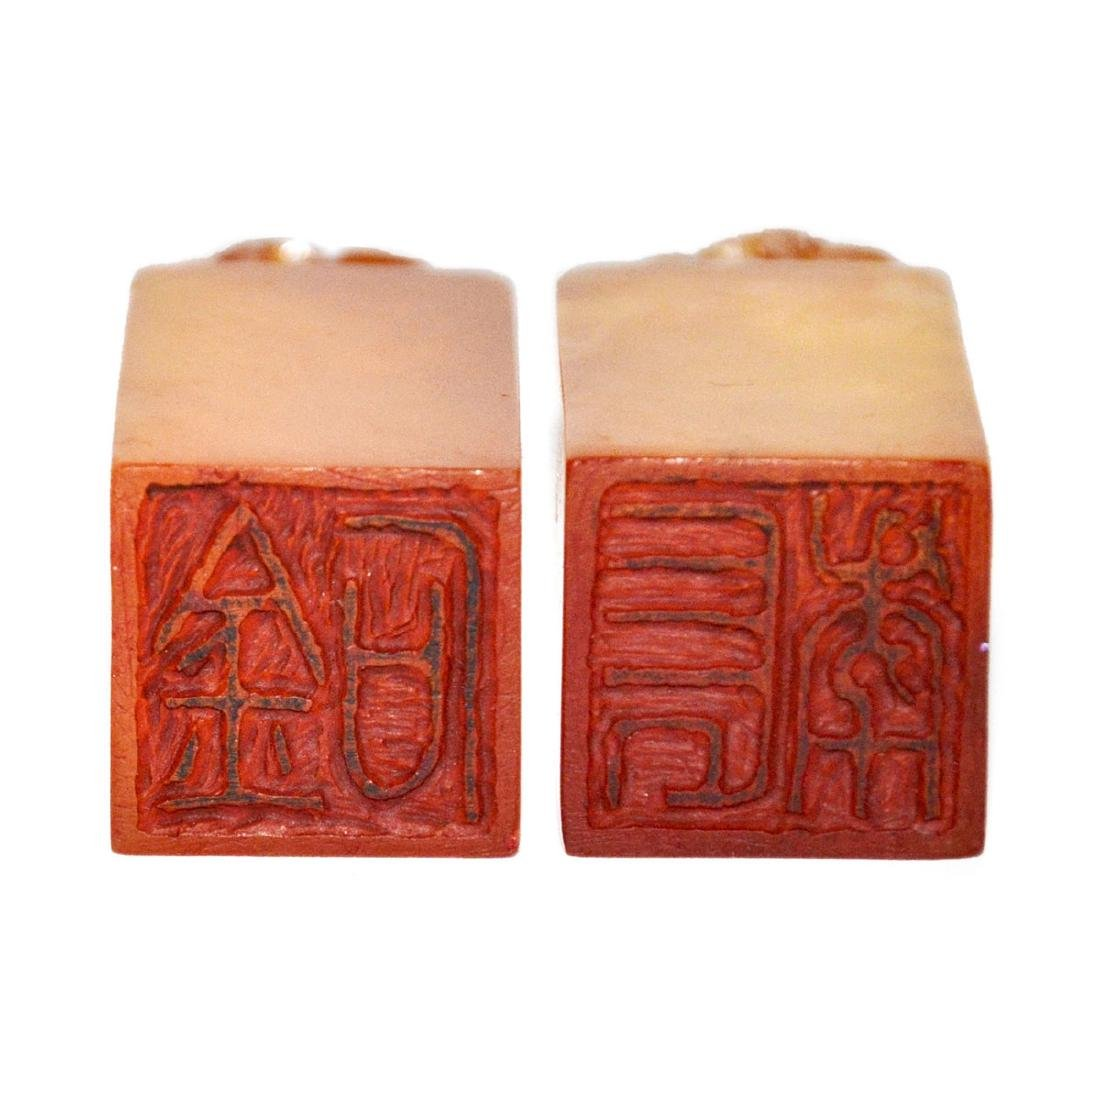 A Pair of Yellow Furong Stone Seals with 'Fu ' Box and - 7